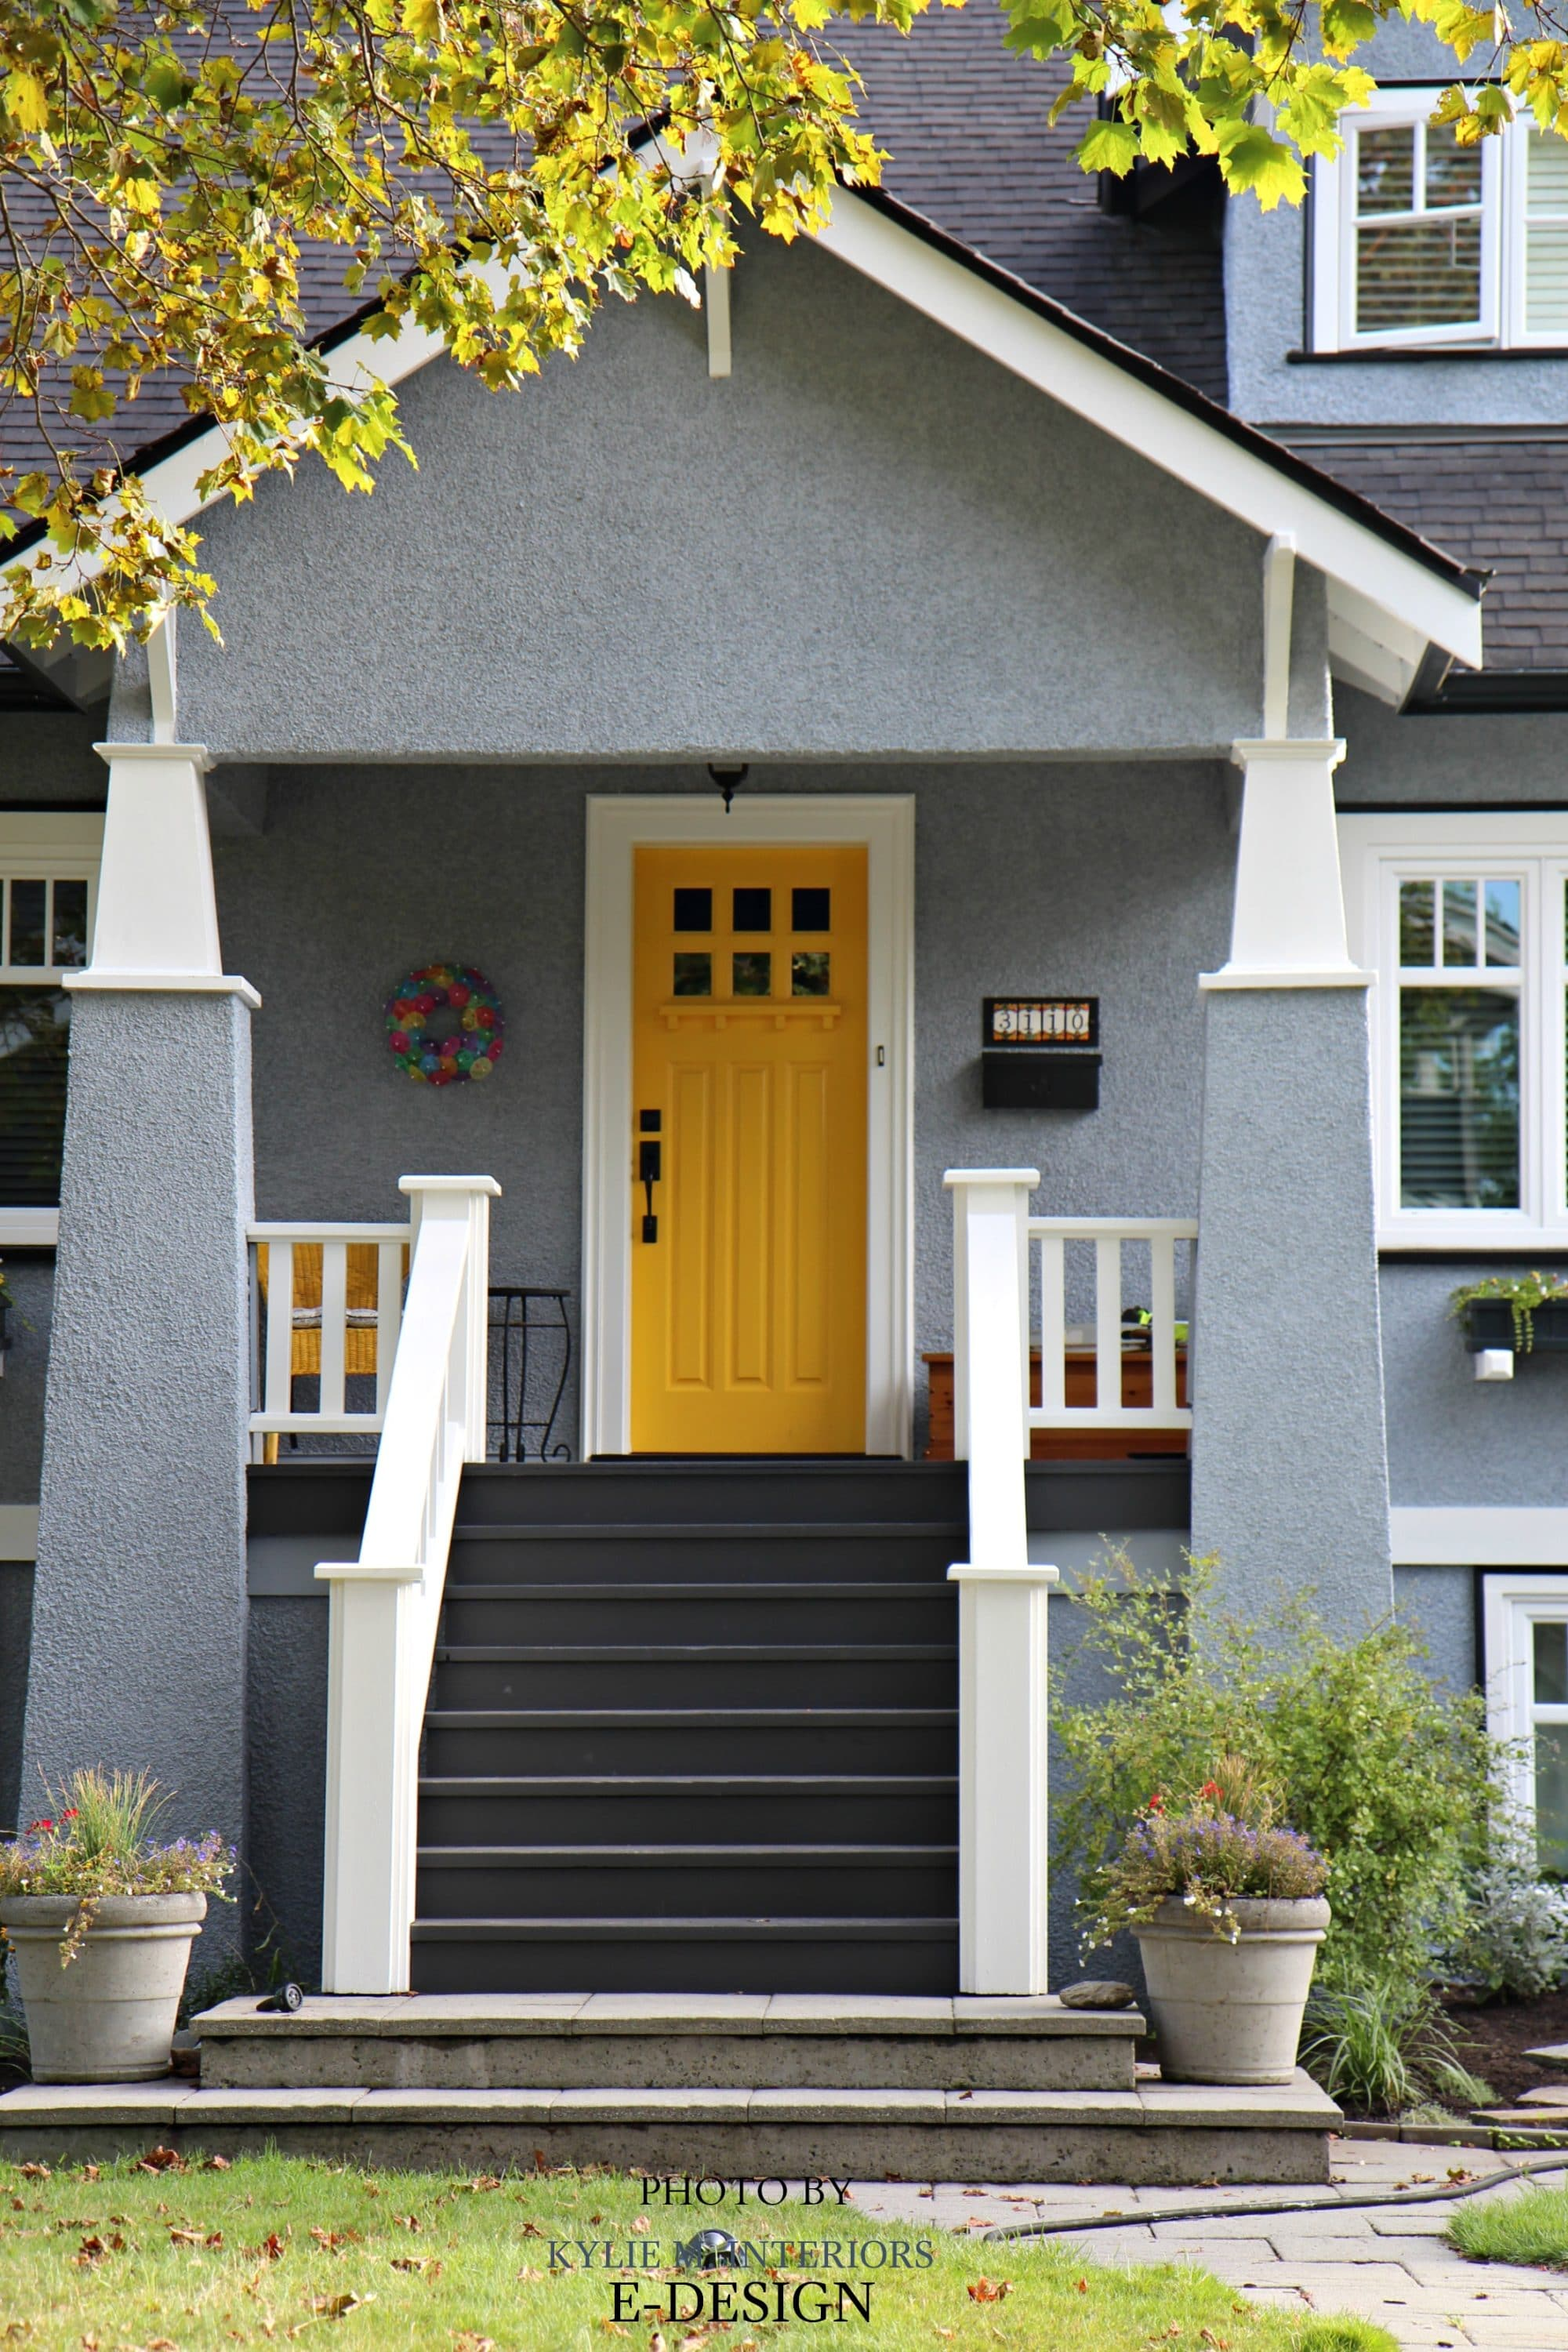 white front door yellow house. exterior palette similar to sherwin williams rayo de sol yellow front door network gray siding benjamin moore kendall charcoal stairs white trim house b